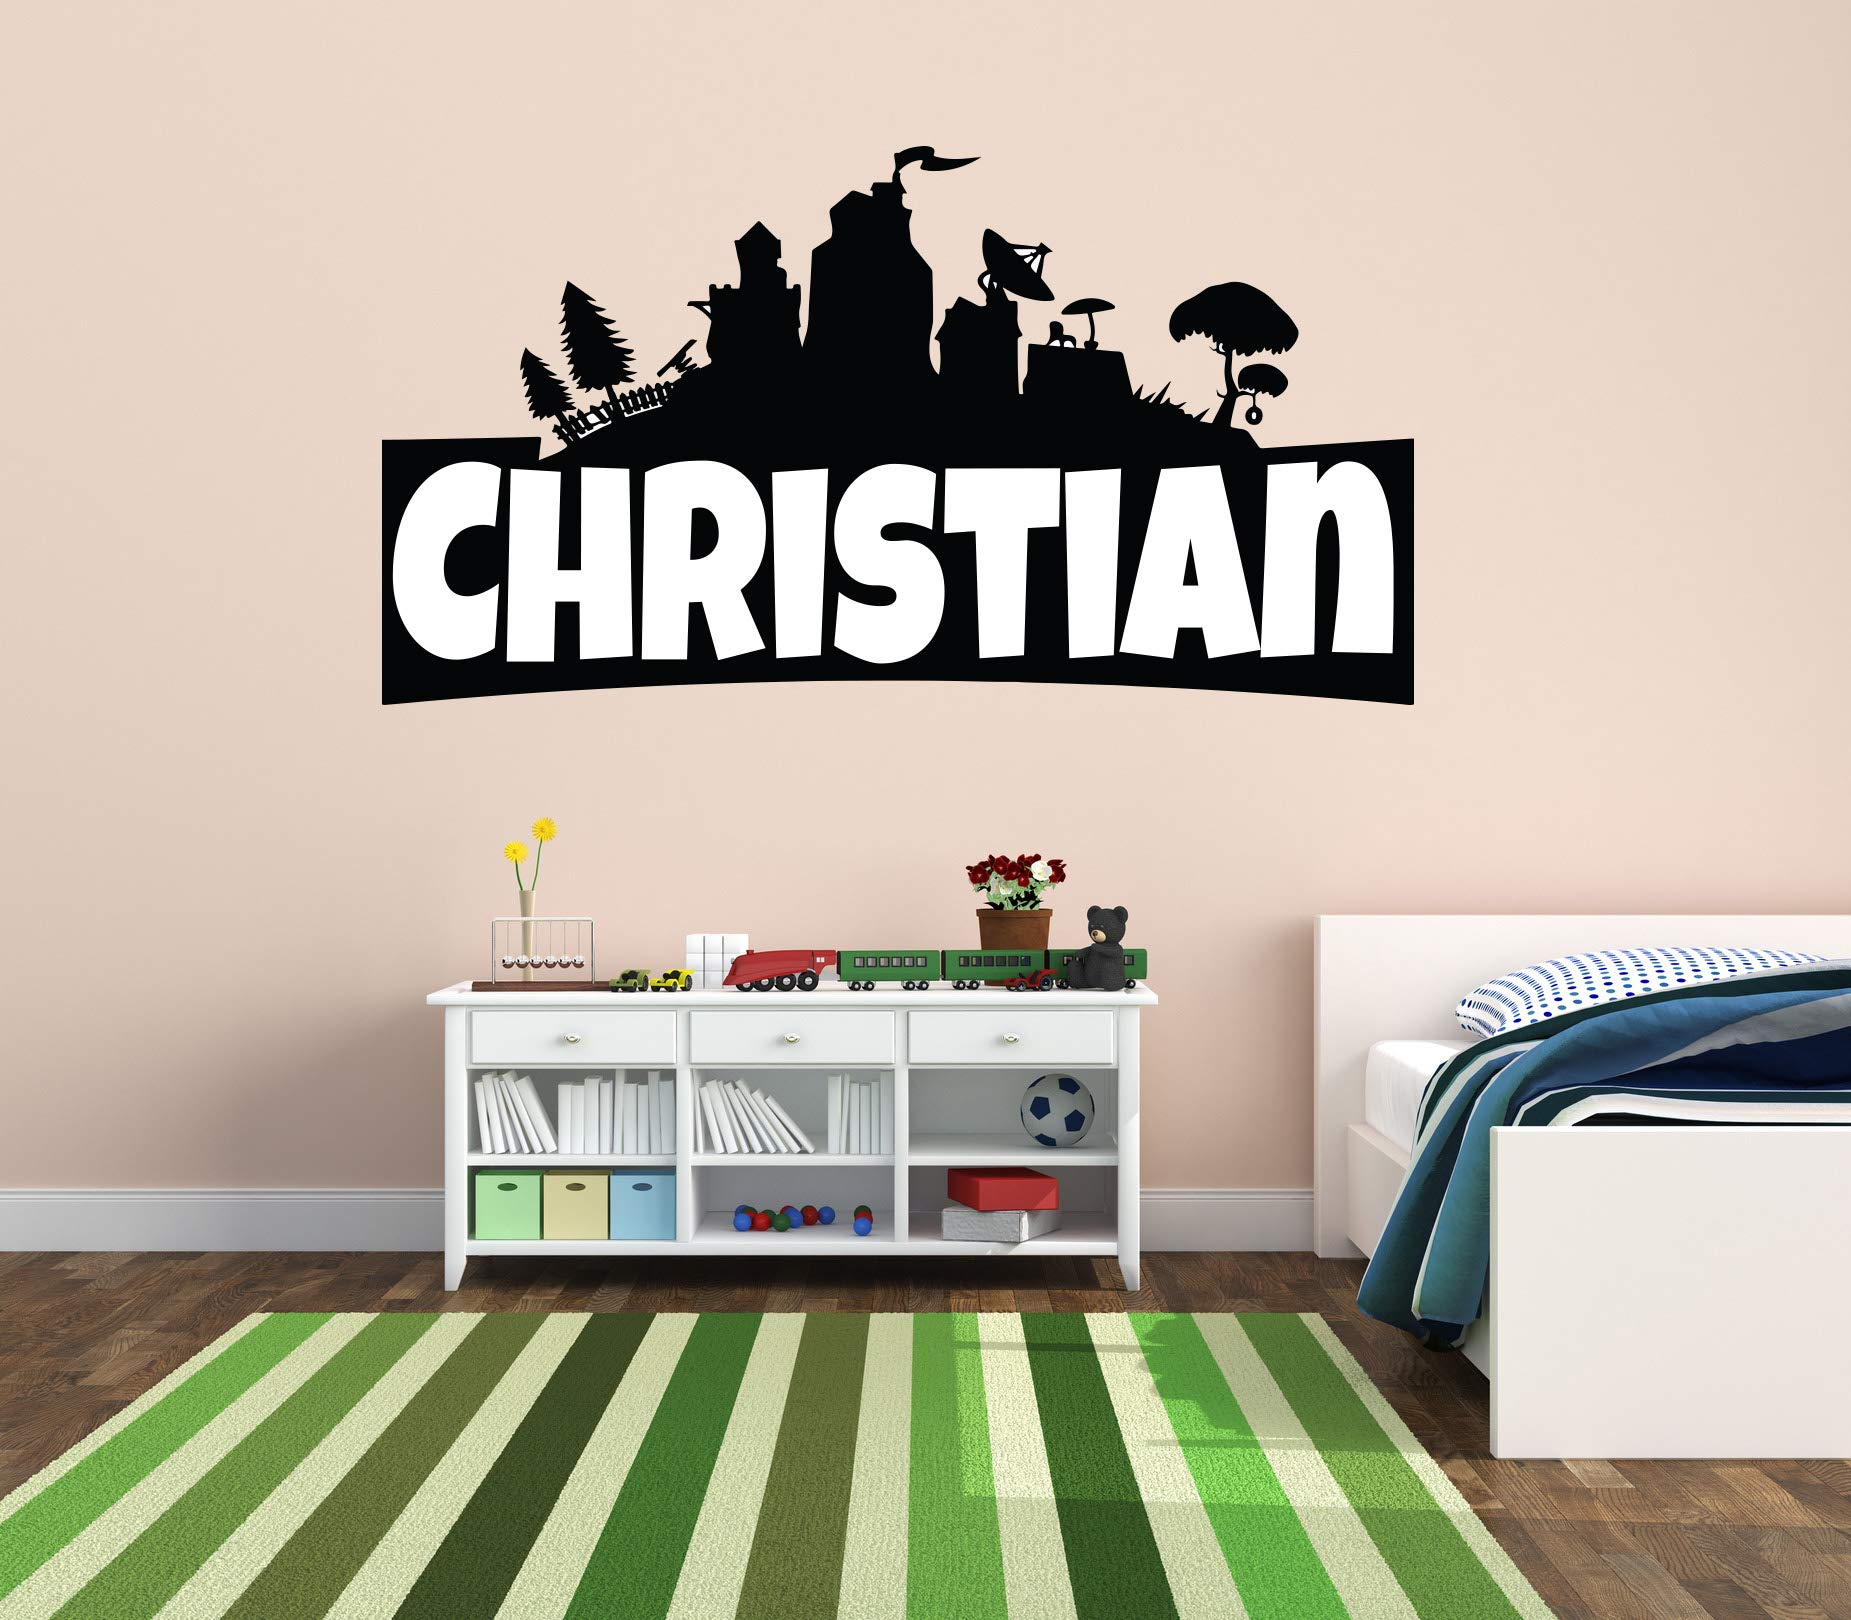 Custom Name Wall Decal - Famous Game - Wall Decal for Home Bedroom Nursery Playroom Decoration (Wide 40''x22'' Height) by CuteDecals